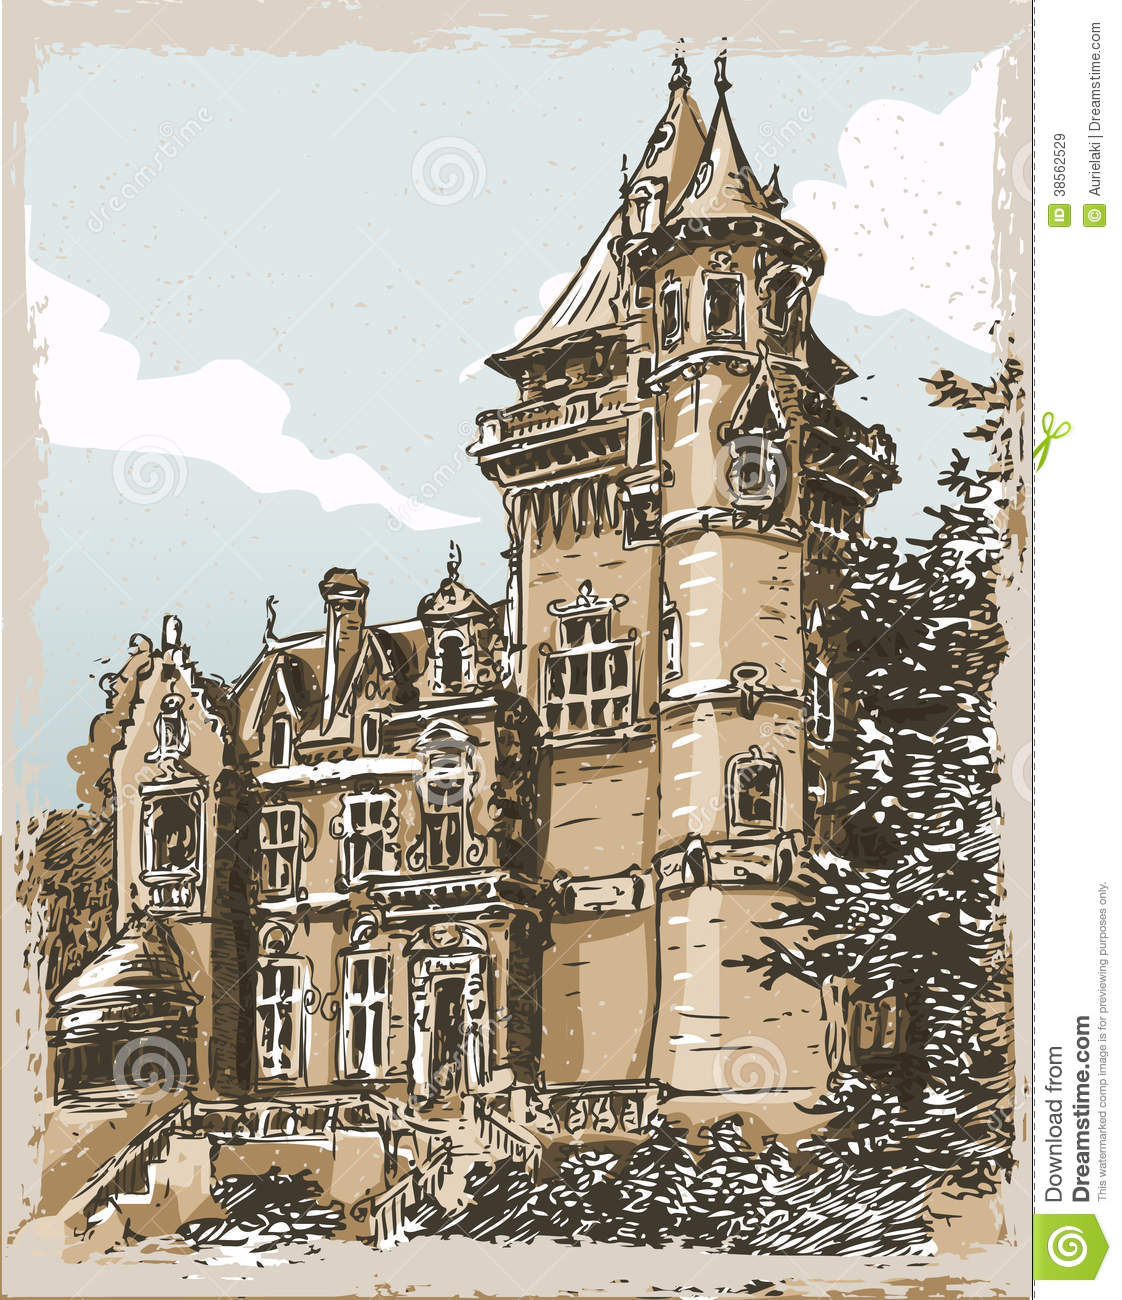 Vintage Hand Drawn View Of Old Castle In Belgium Royalty